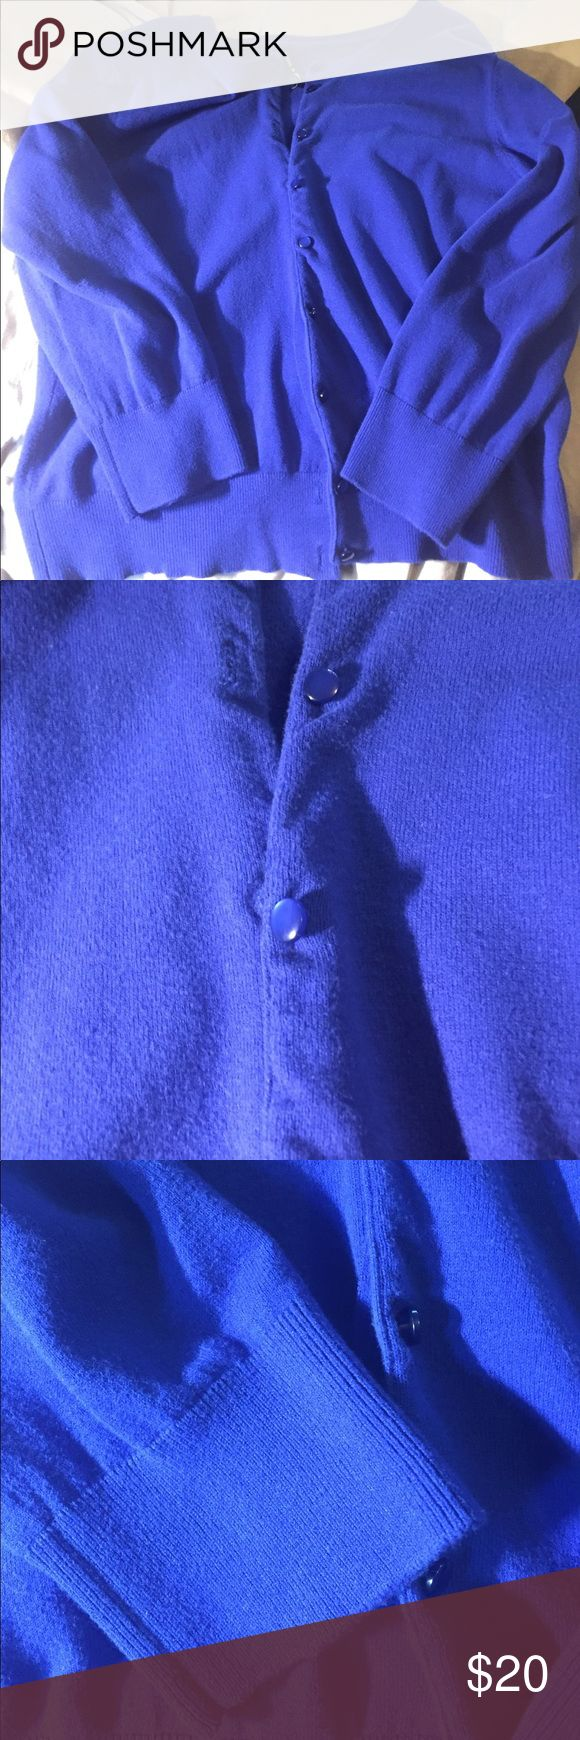 Gorgeous blue cardigan never worn from nord rack Never worn but I dry cleaned it so it will be nice and clean! Beautiful blue color! Perfect condition. Cable & Gauge Sweaters Cardigans